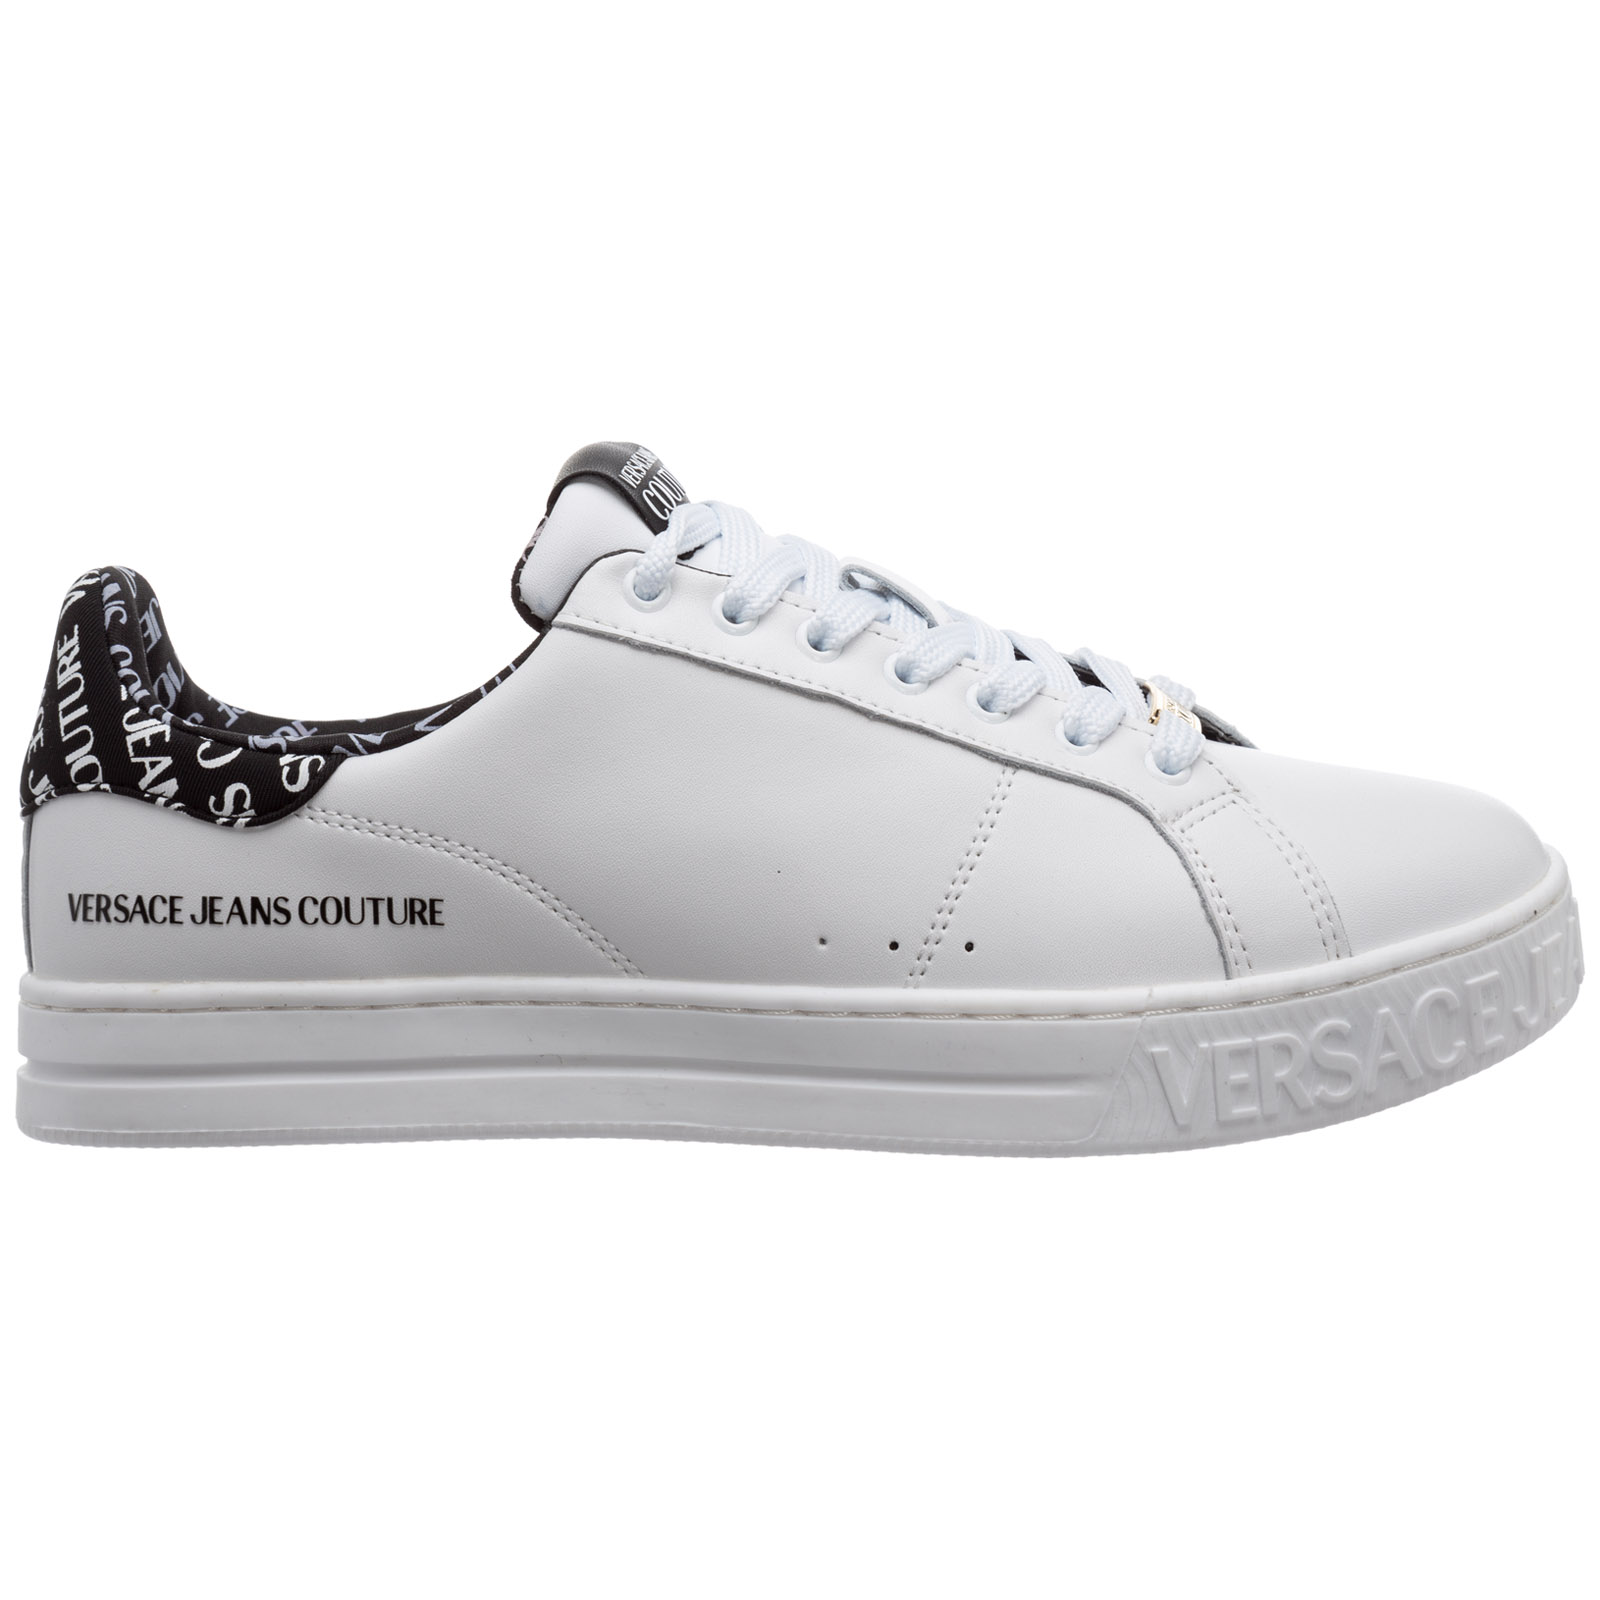 Versace Jeans Couture Leathers MEN'S SHOES LEATHER TRAINERS SNEAKERS FONDOCOURT